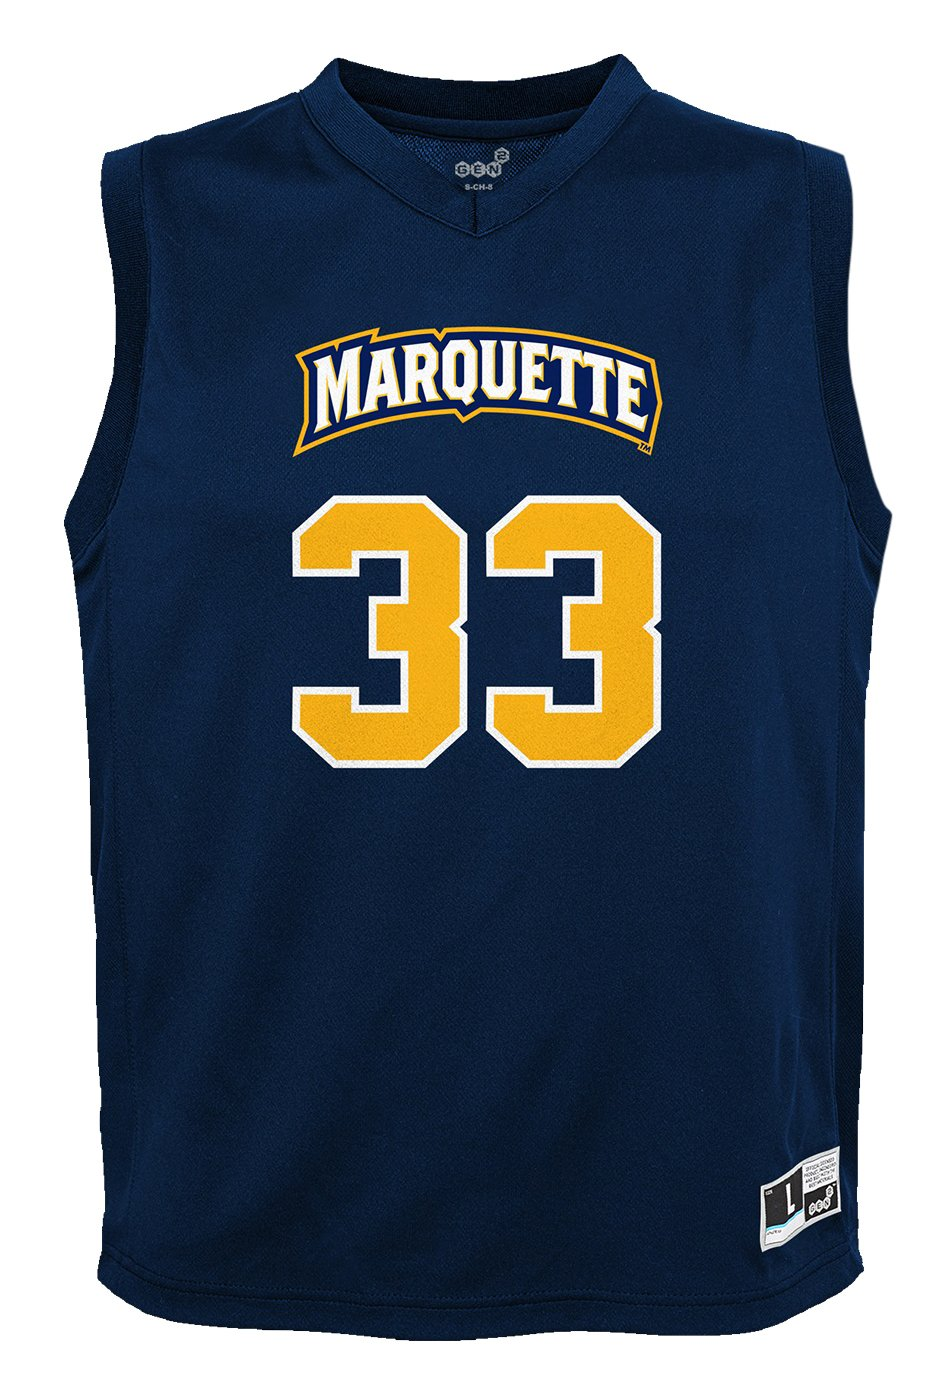 Youth Small NCAA by Outerstuff NCAA Marquette Golden Eagles Youth boys Chase Basketball Jersey Navy 8